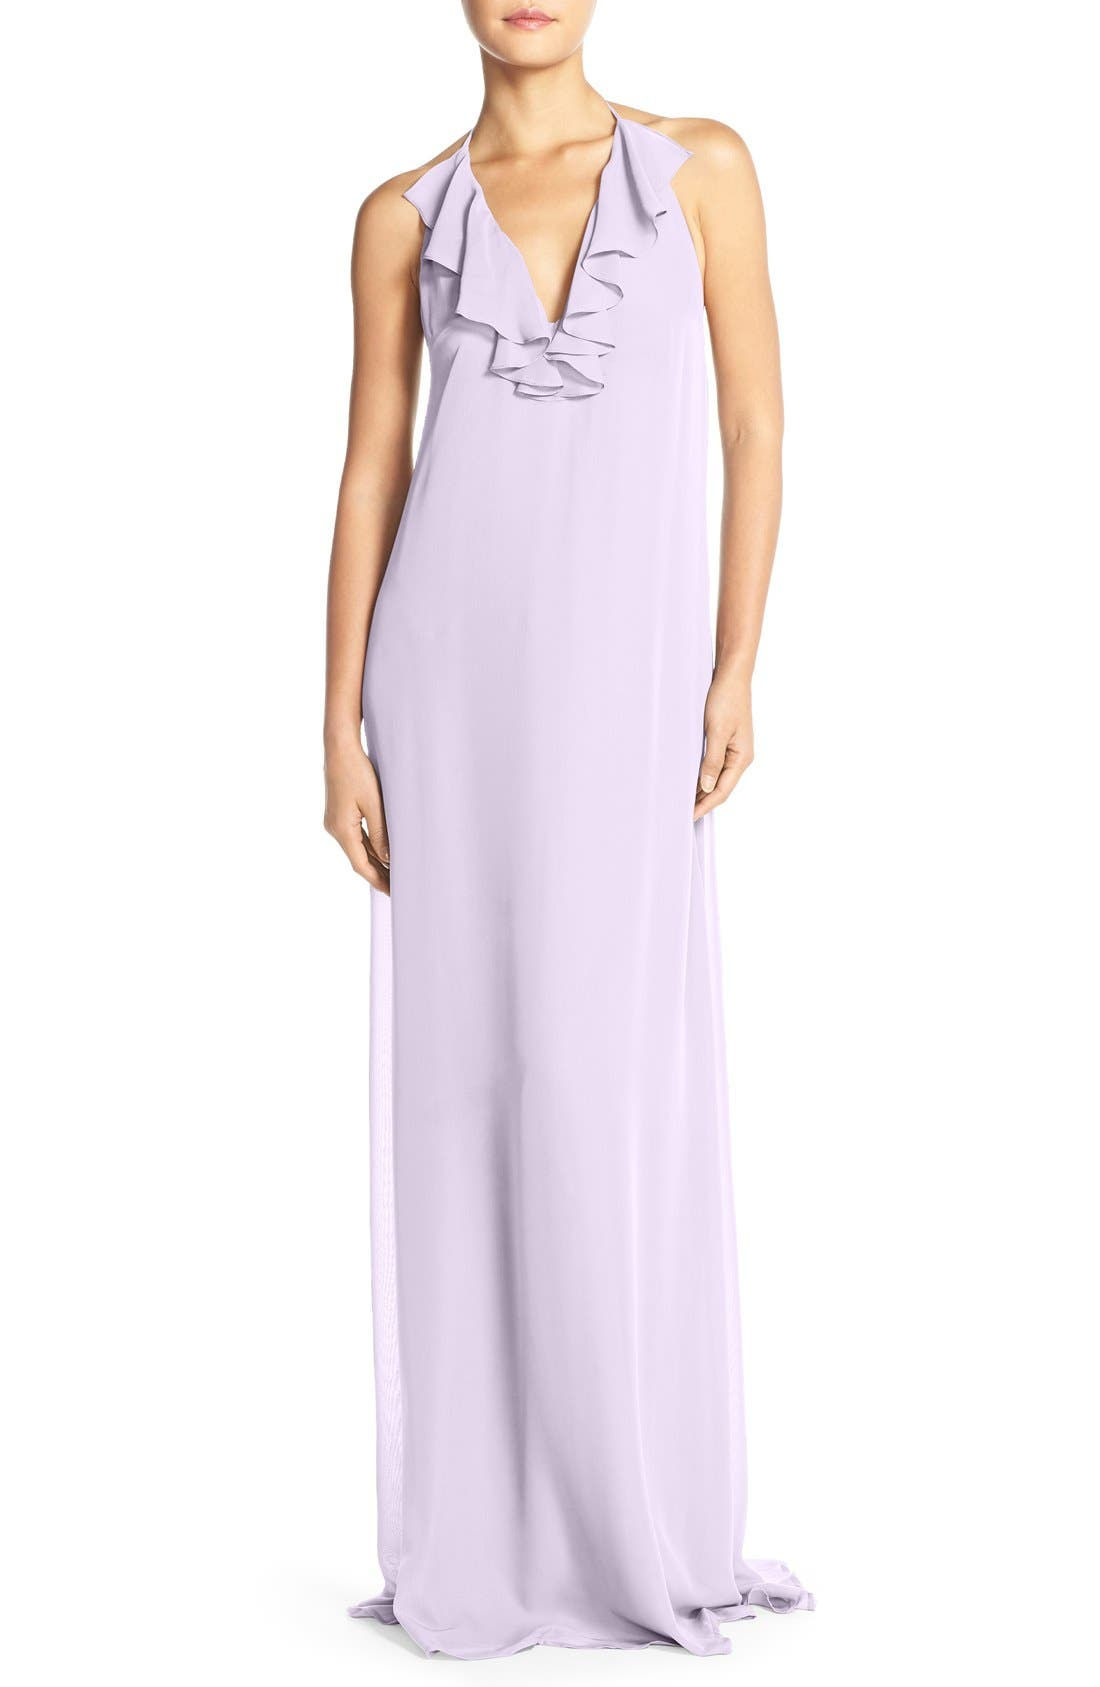 Main Image - nouvelle AMSALE 'Daryl' Ruffle Neck Chiffon Halter Gown